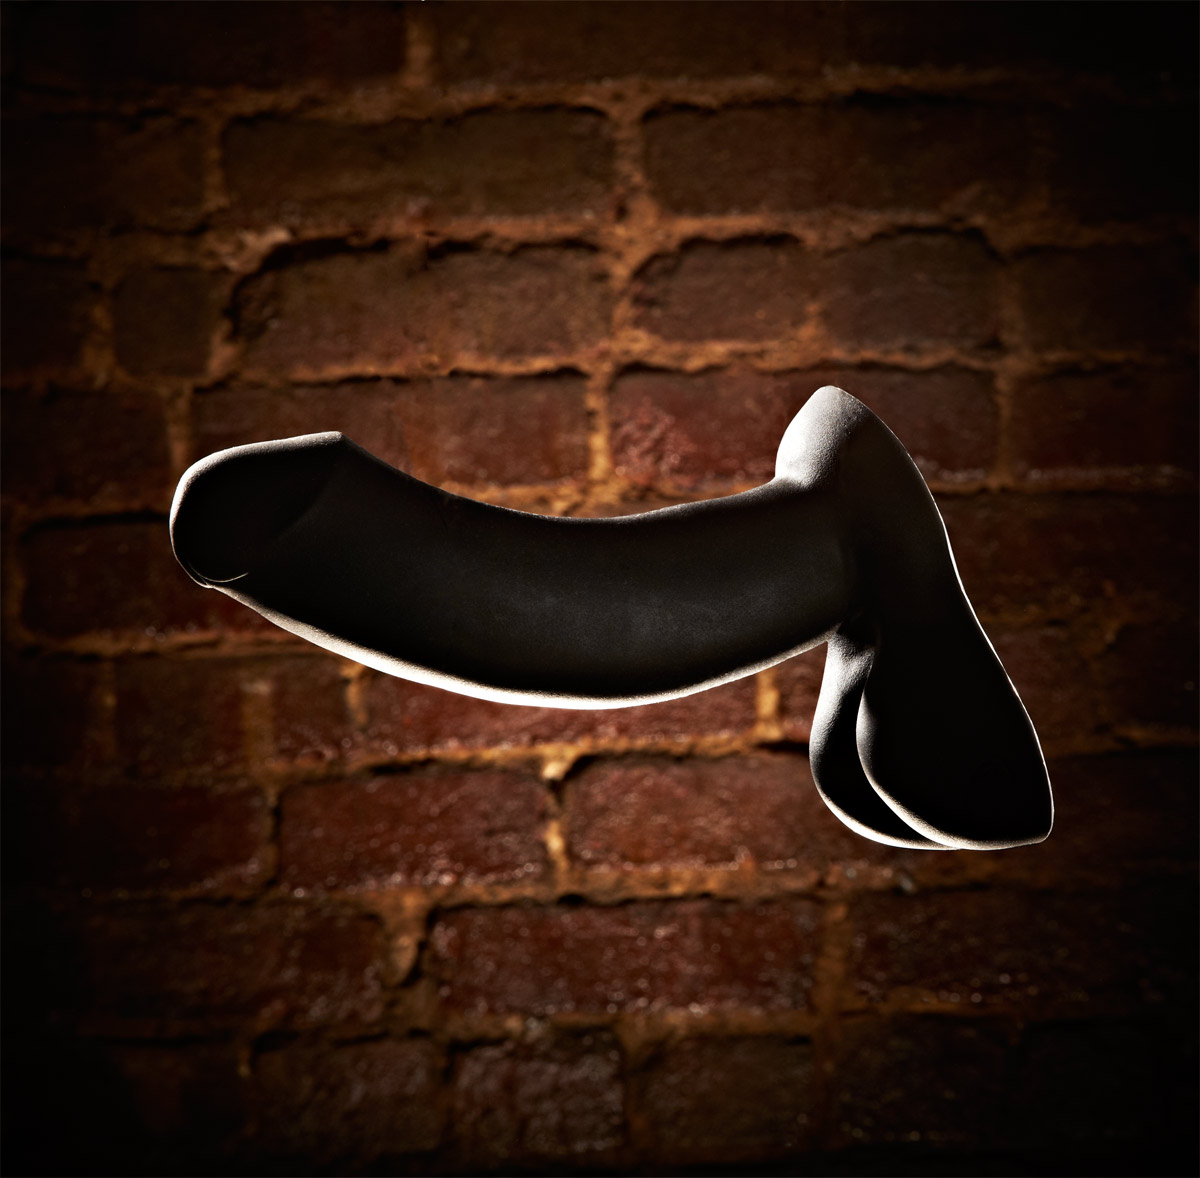 still life photograph of black dildo sex toy.